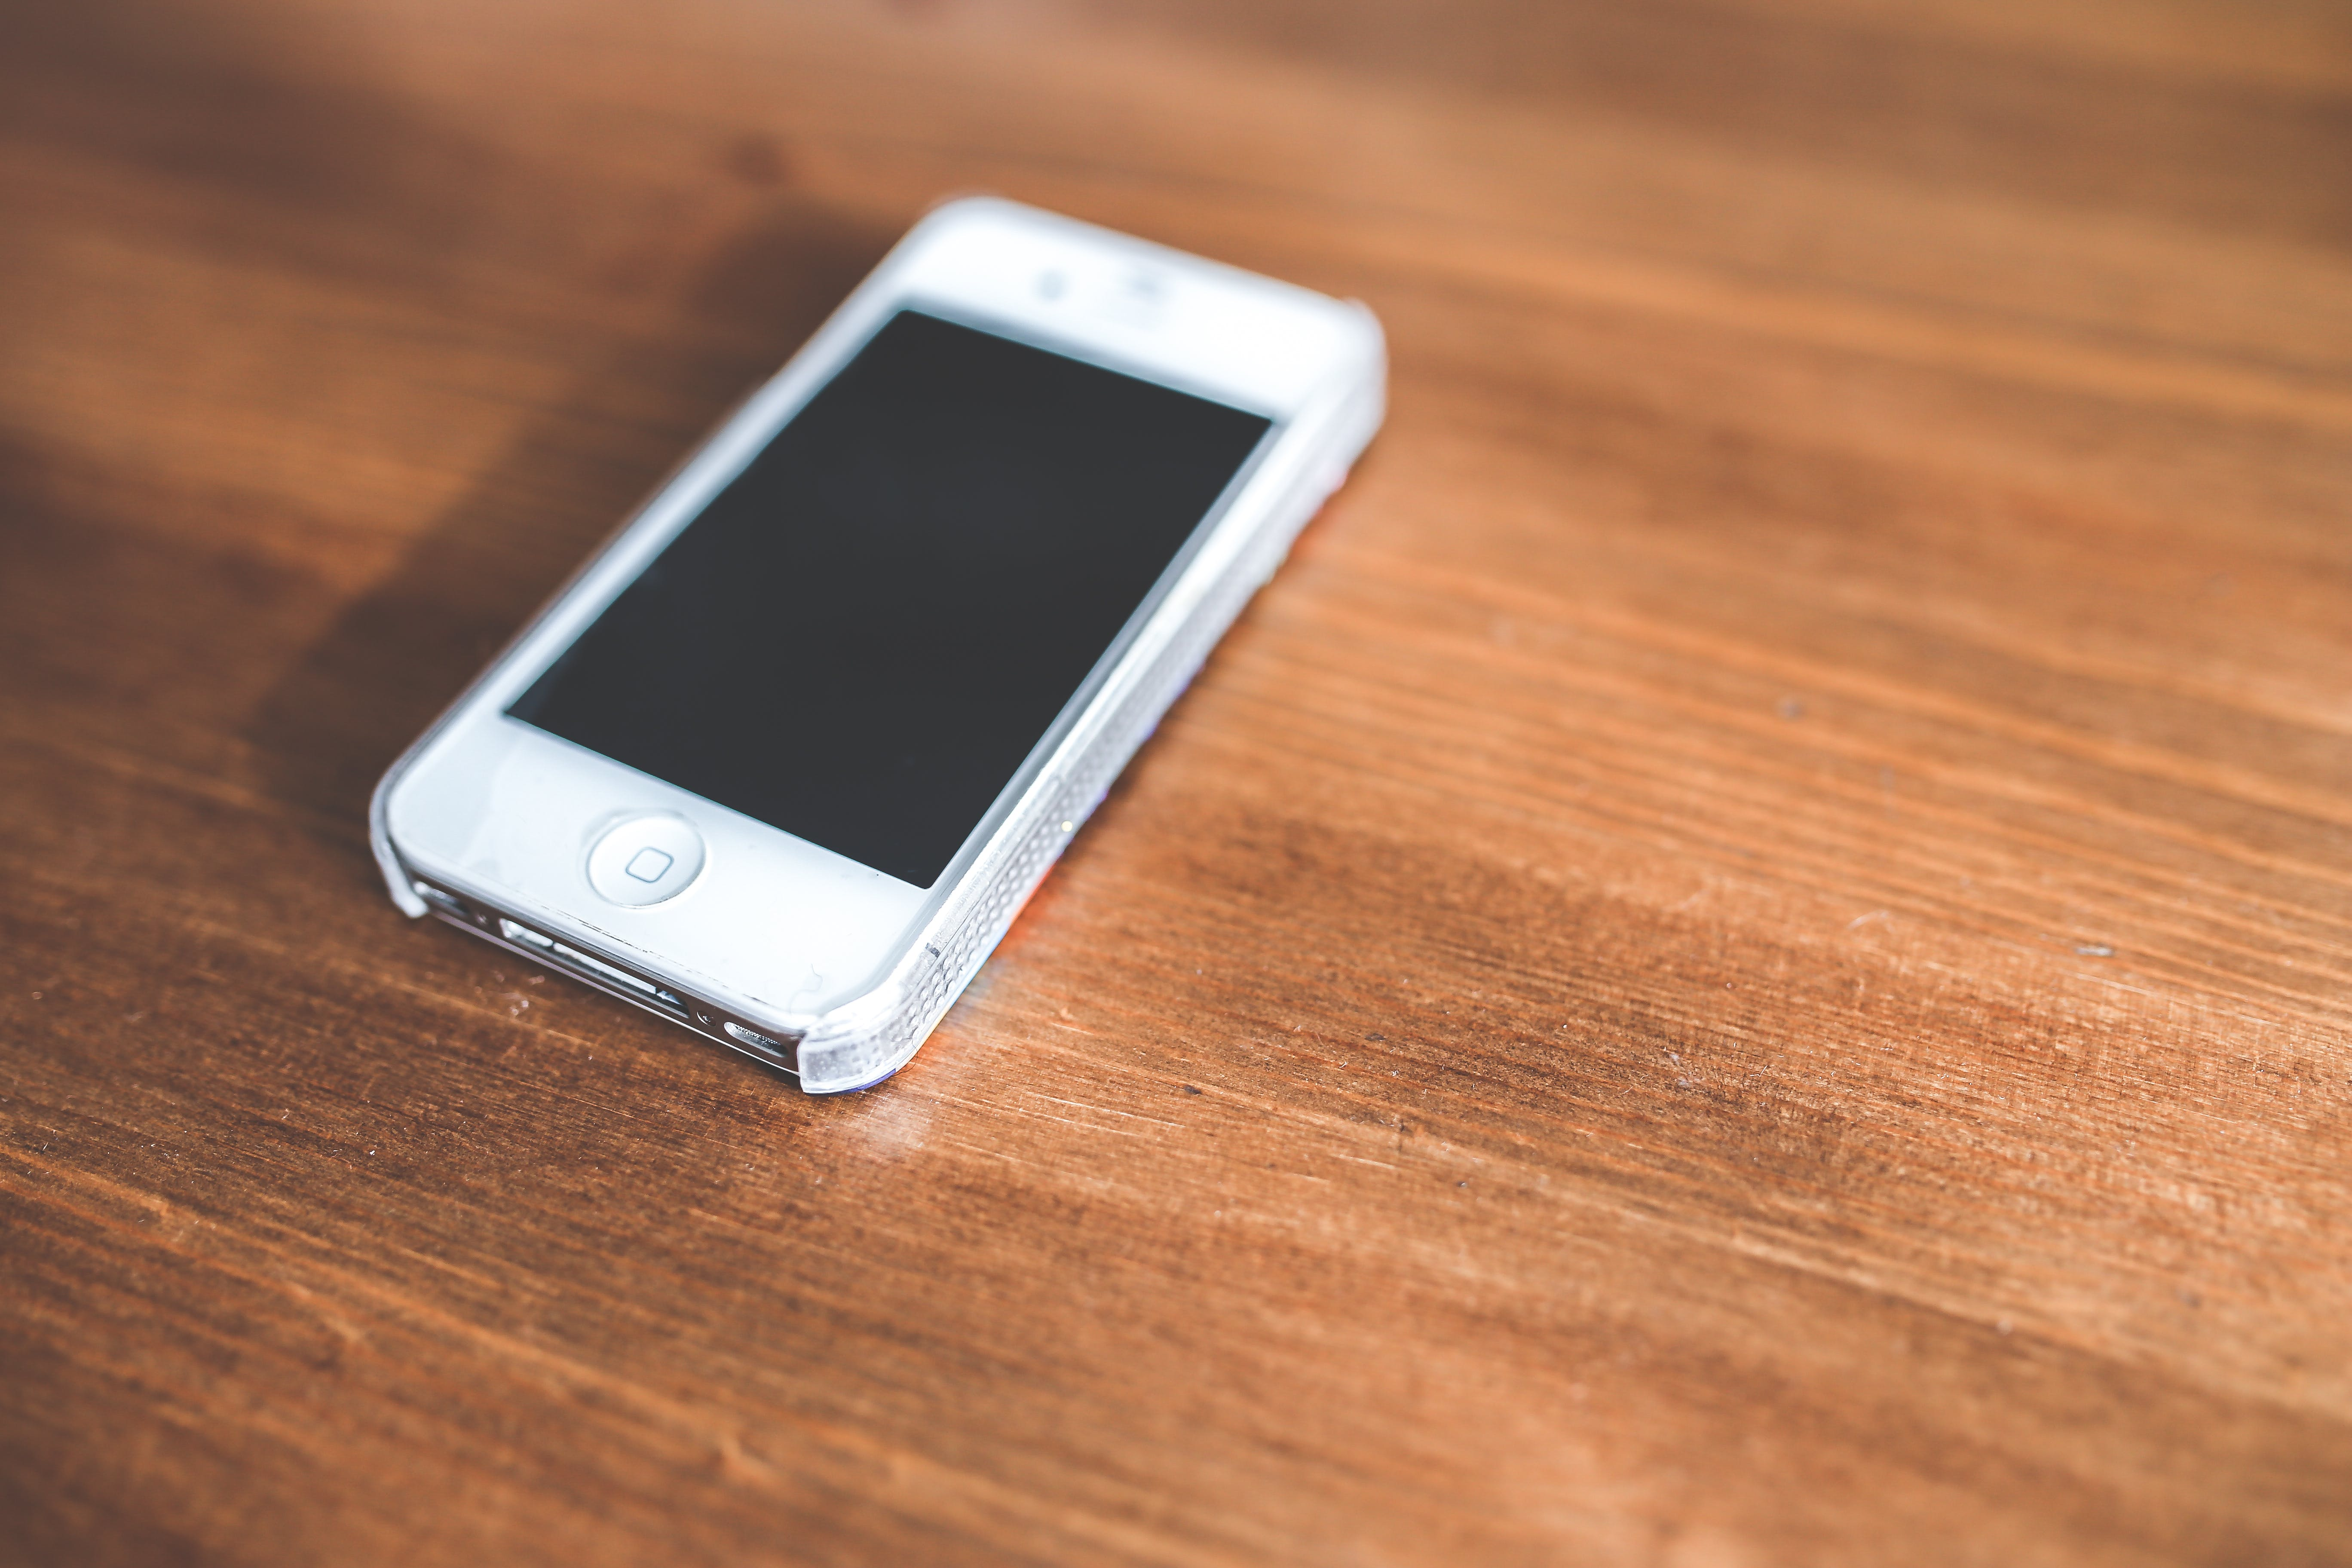 White iPhone 4/4s on a wooden table